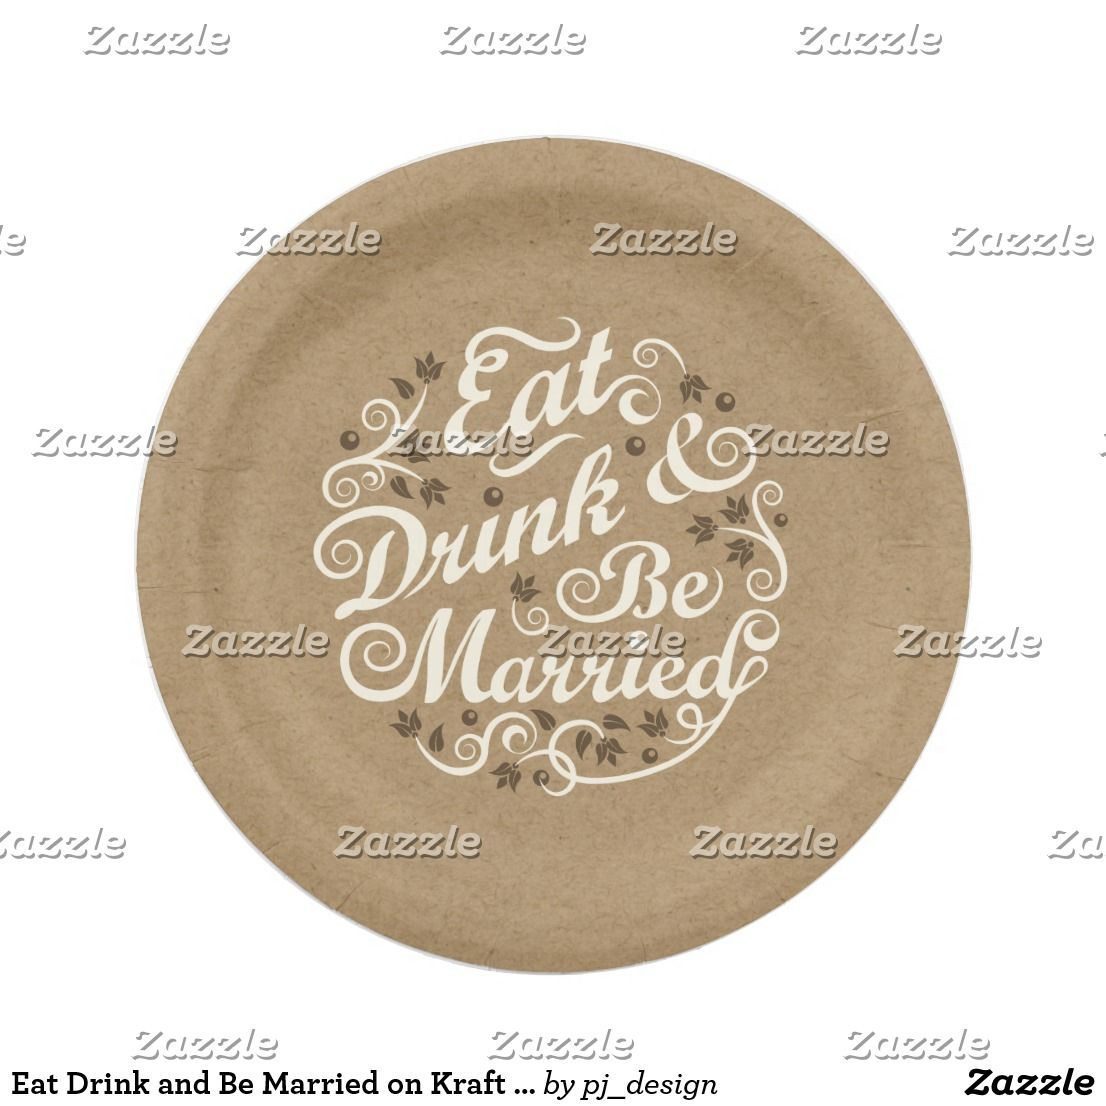 Eat Drink and Be Married on Kraft Paper Paper Plate Eat Drink u0026 Be Married typography with swirls of flowers and vines on a kraft paper LOOK background.  sc 1 st  Pinterest & Eat Drink and Be Married on Kraft Paper Paper Plate | Rehearsal ...